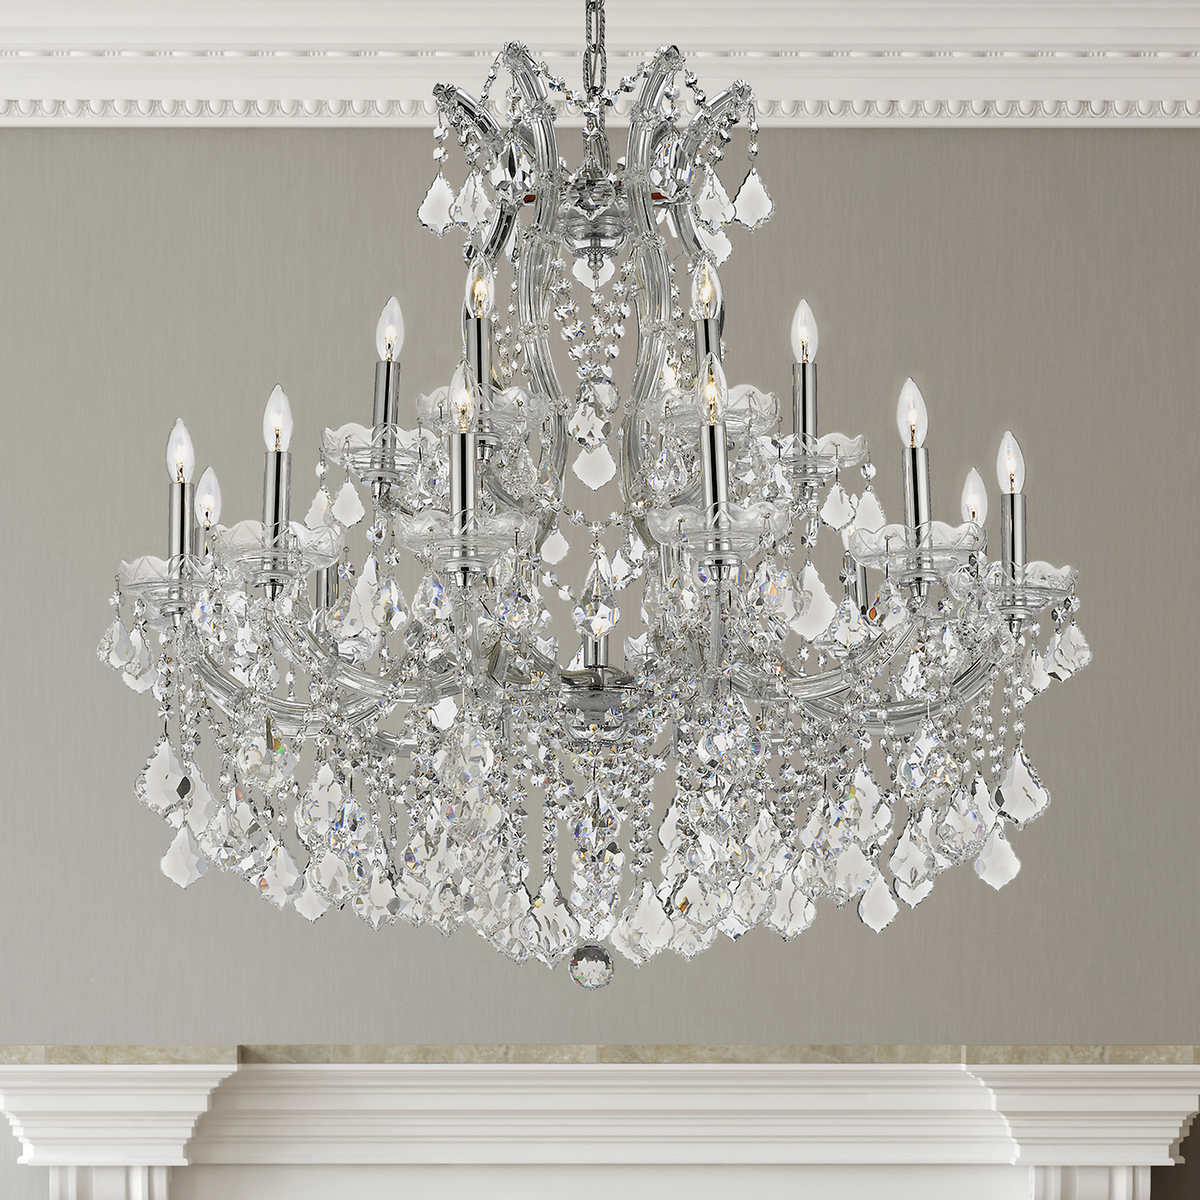 Lighting by pecaso chrome maria theresa chandelier maria theresa chandelier item 745091 click to zoom arubaitofo Choice Image